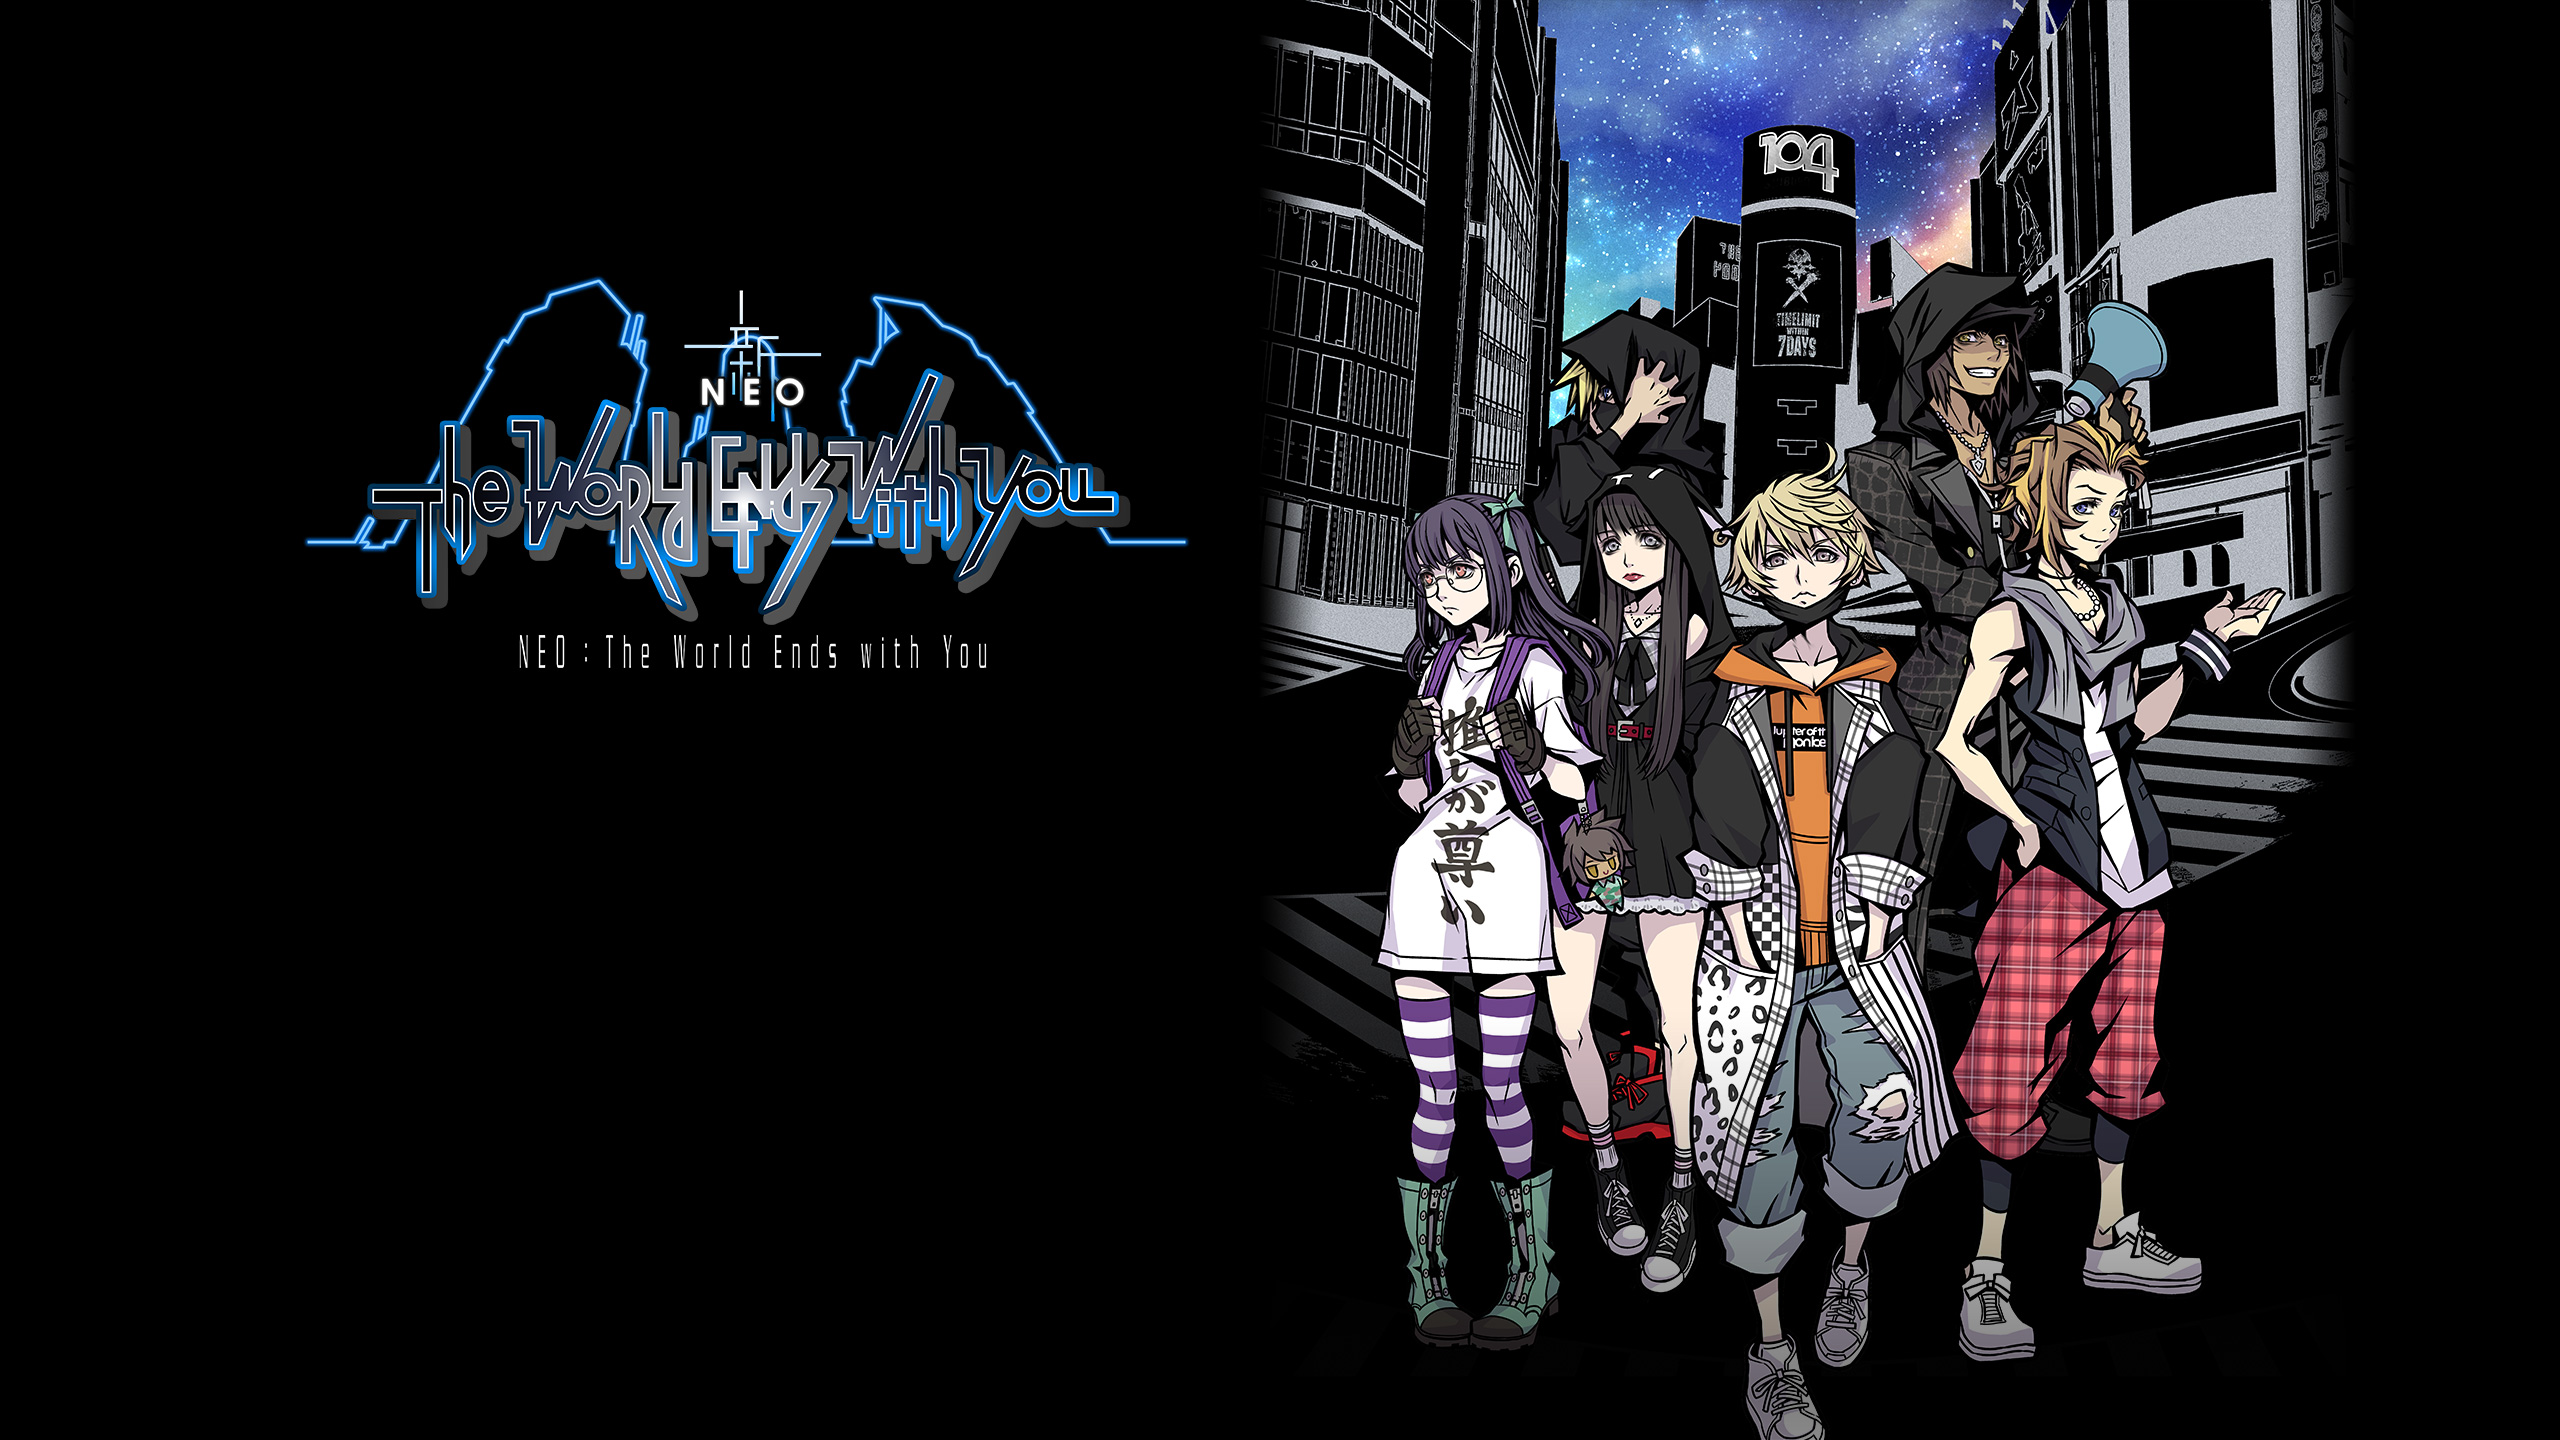 NEO: The World Ends with You Free Download